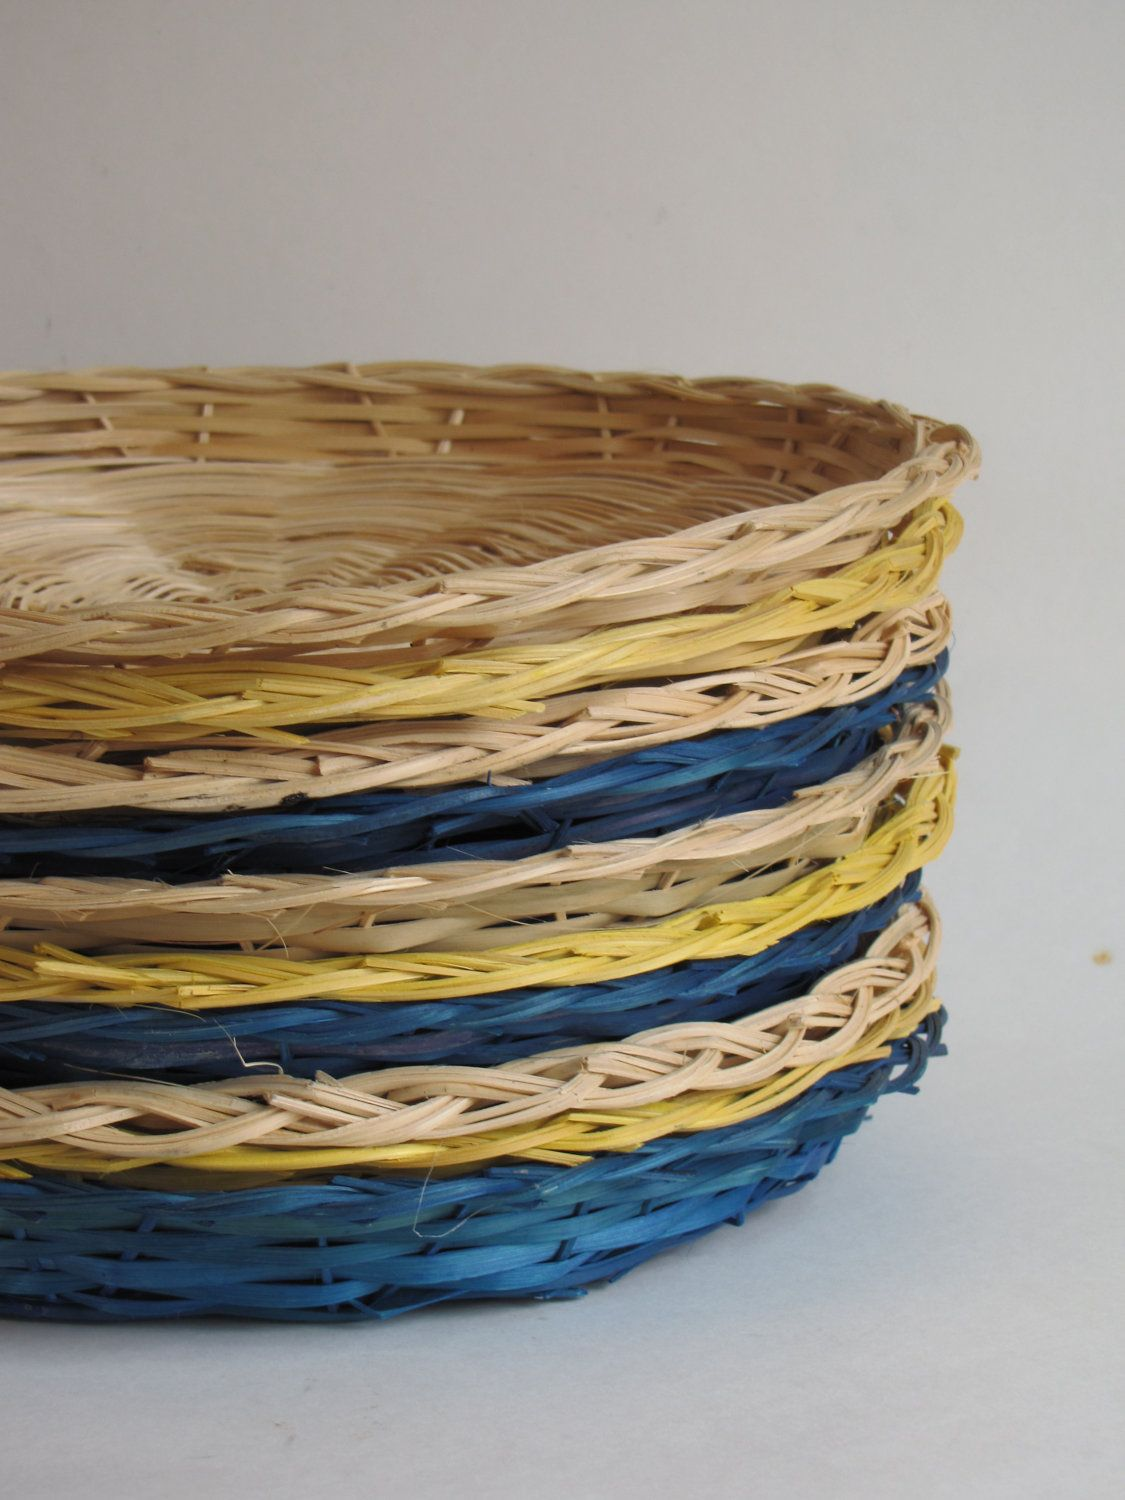 rattan paper plate holders my memories home town pinterest plate holder. Black Bedroom Furniture Sets. Home Design Ideas